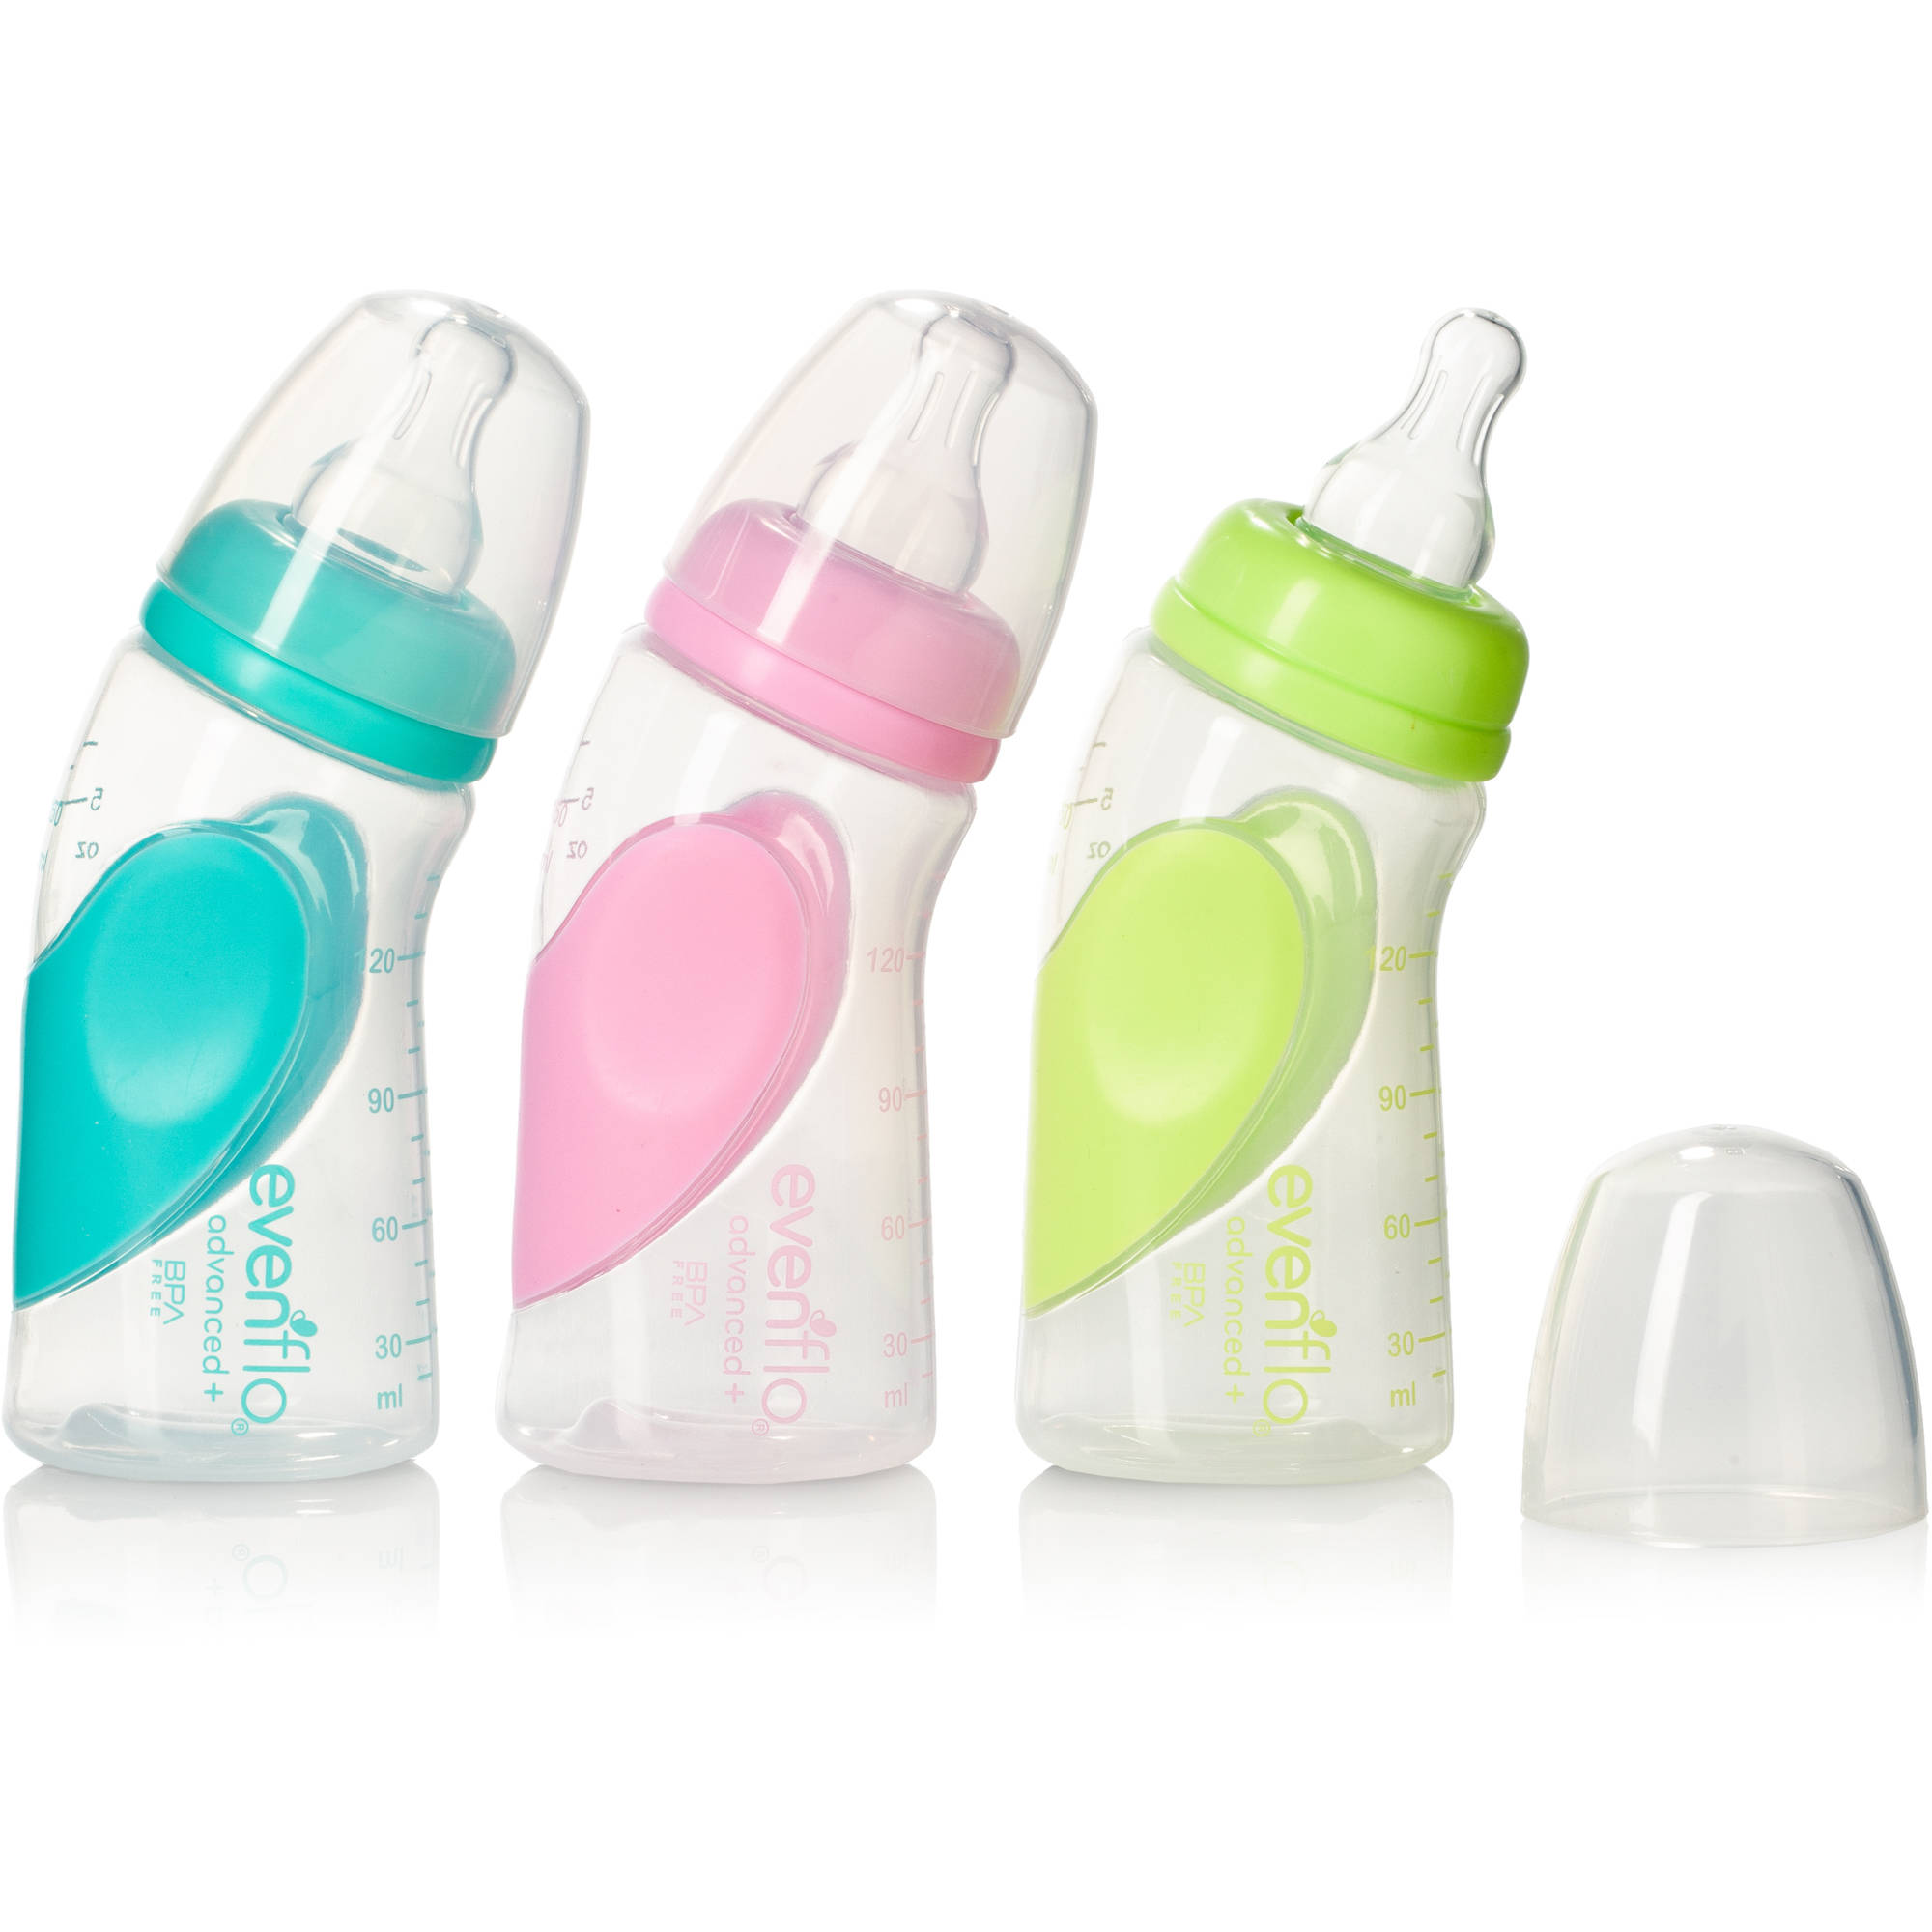 Evenflo Advanced Plus Angled & Vented Bottles, 6 oz, 3 count